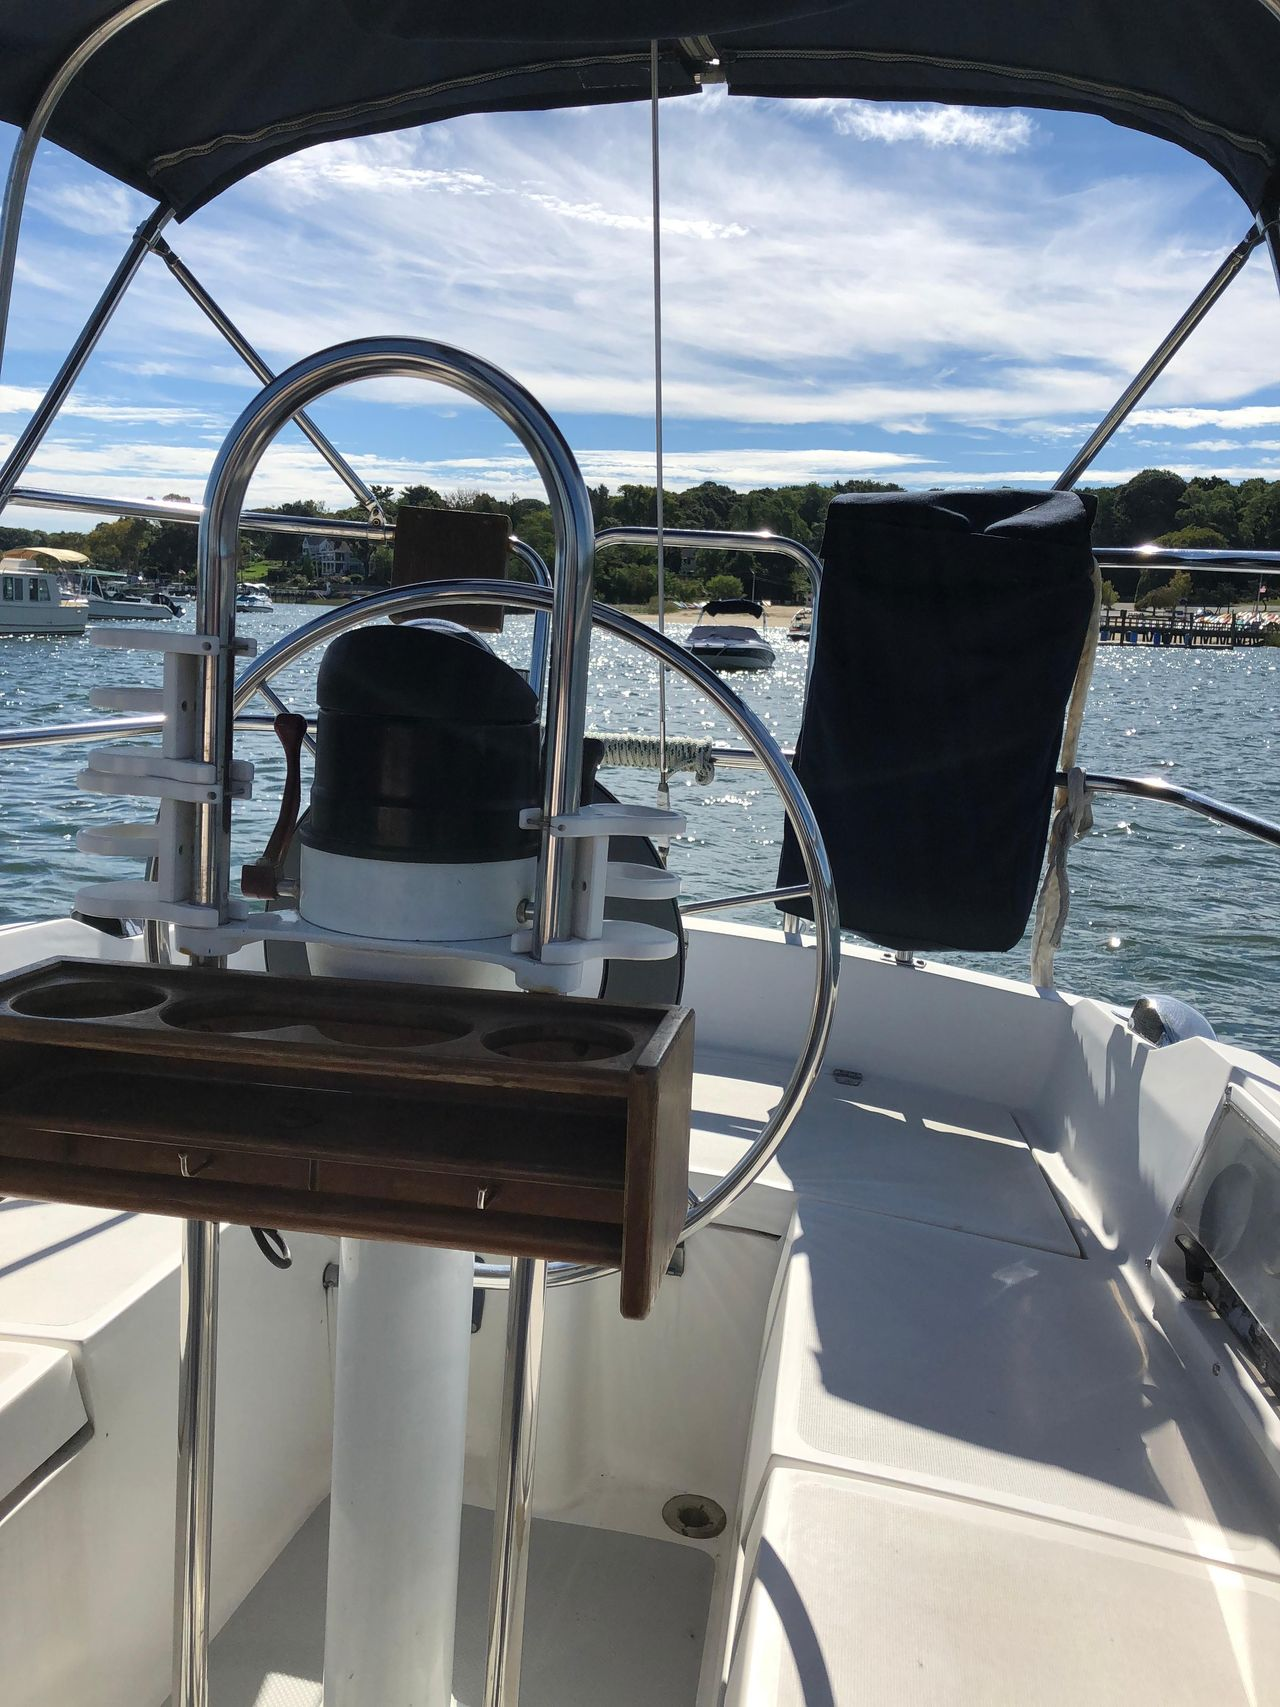 1989 Used Catalina 27 Racer and Cruiser Sailboat For Sale